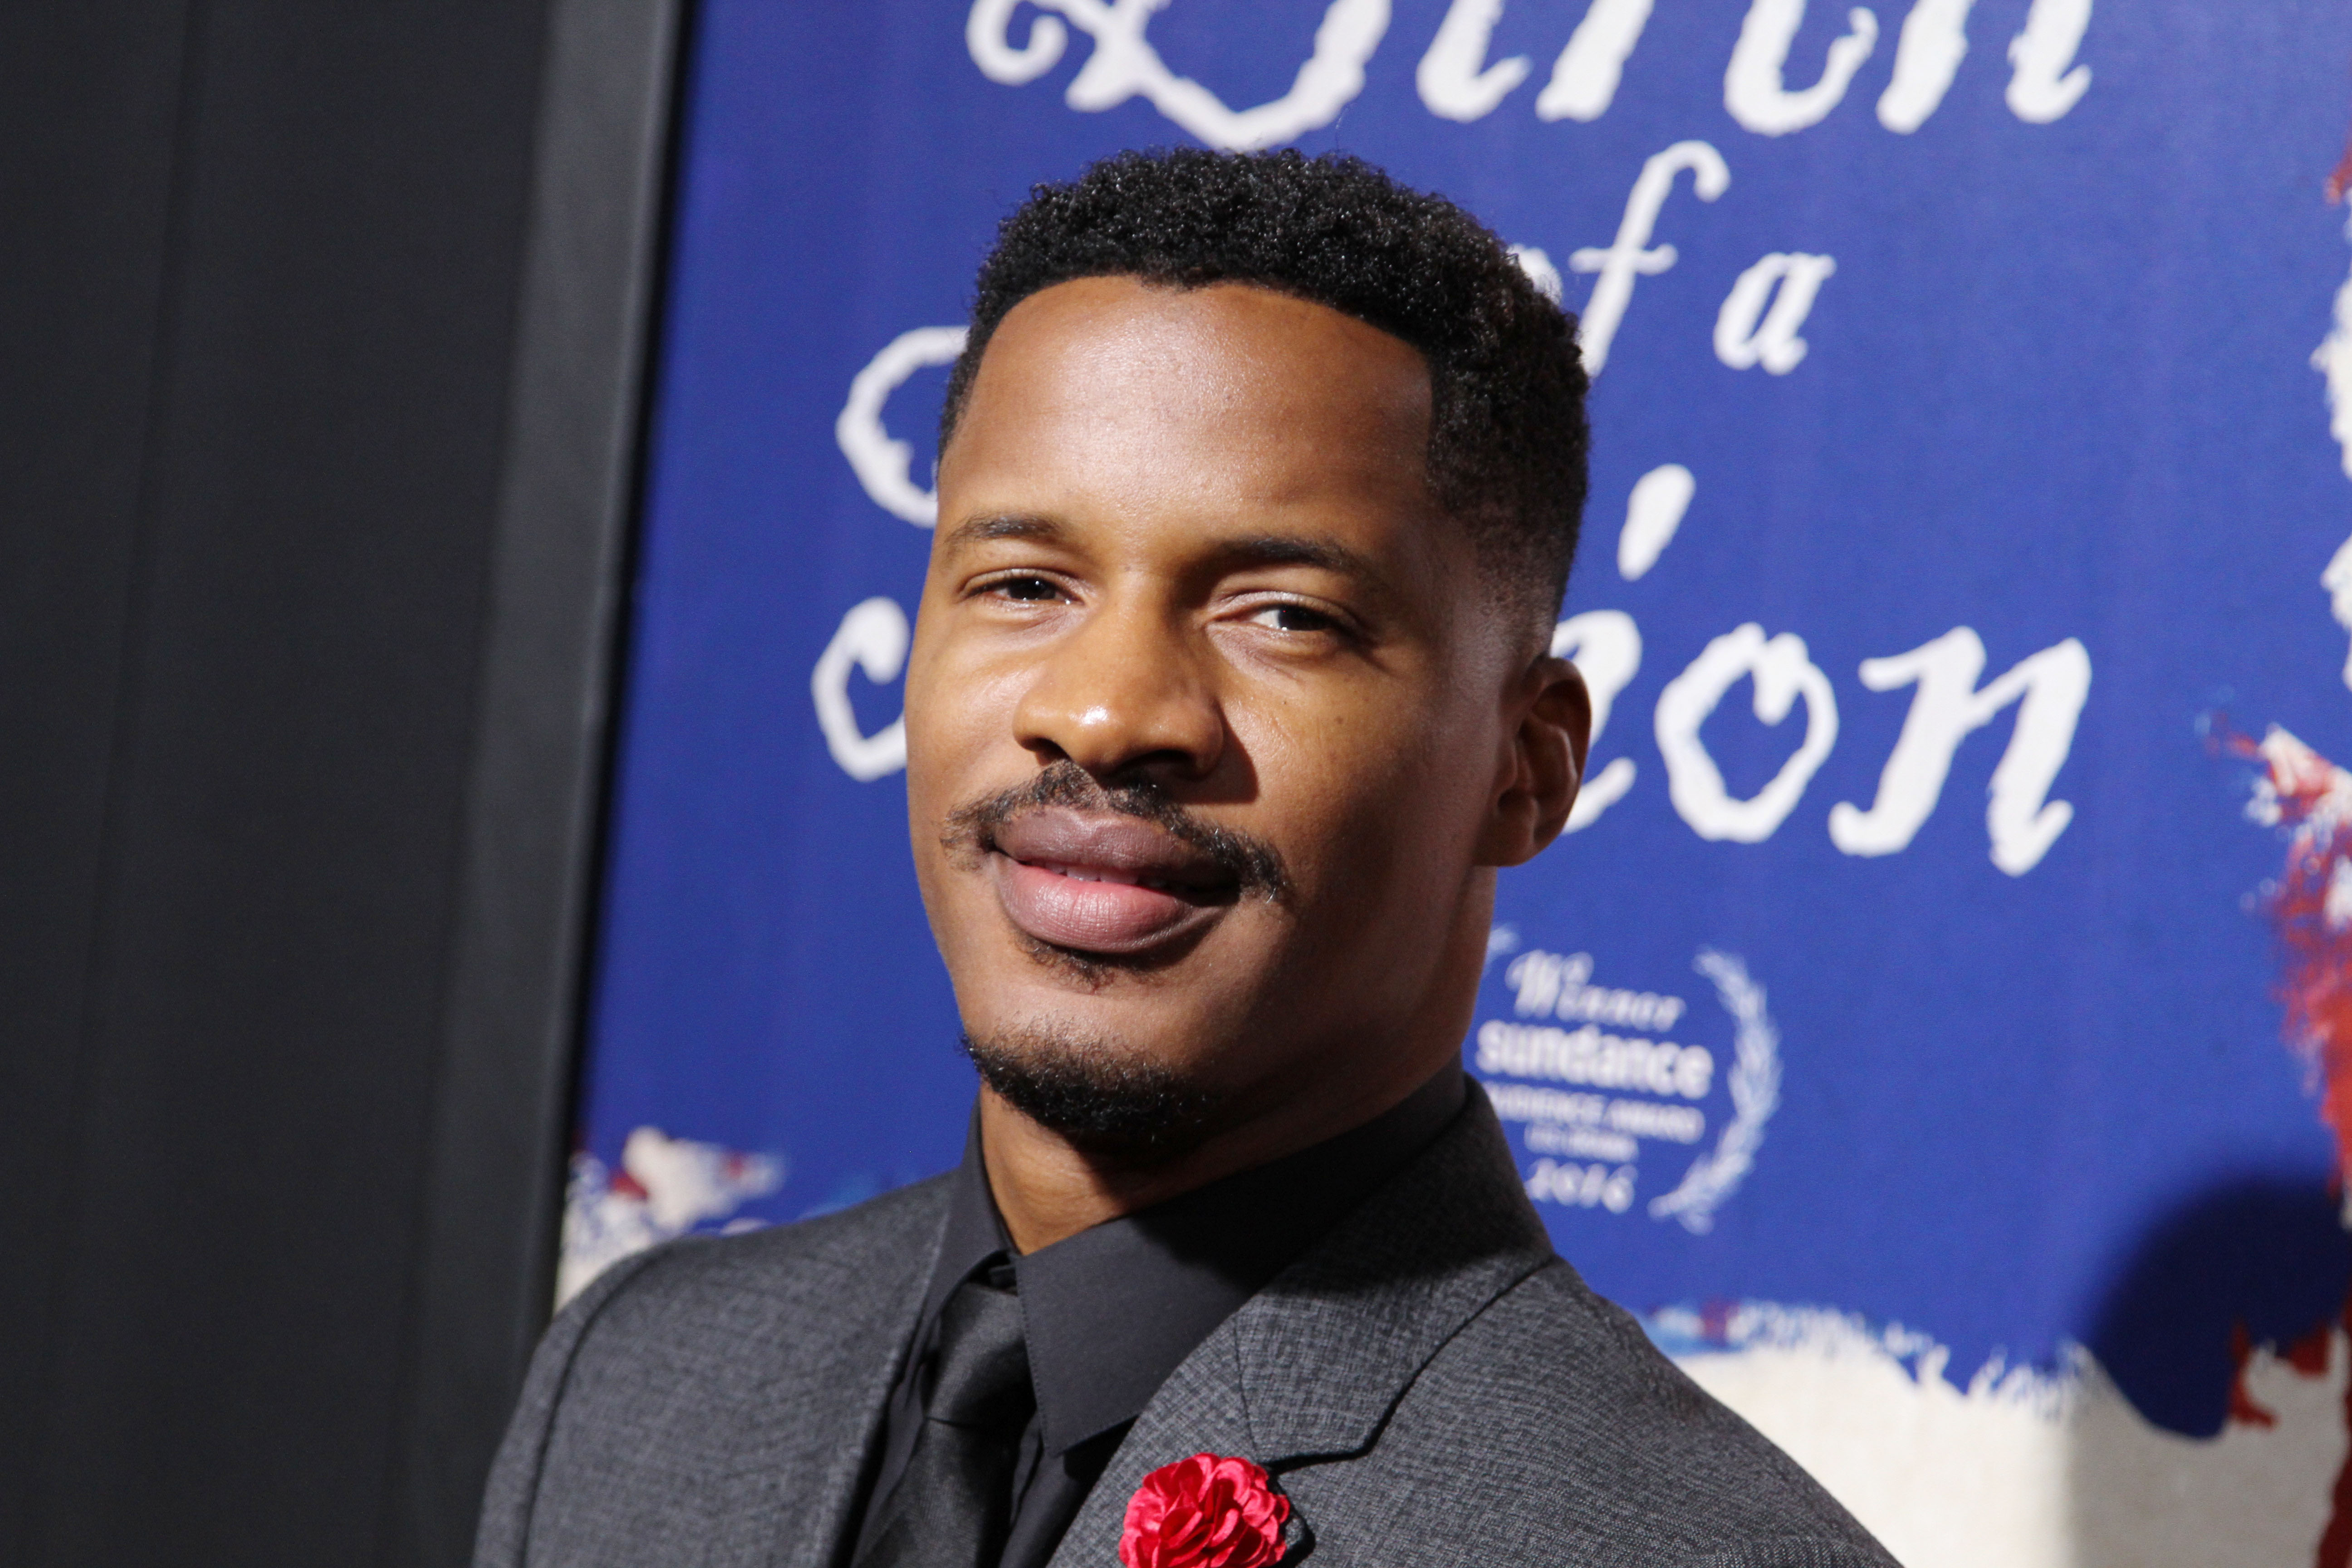 Nate Parker to Premiere 'Birth of a Nation' Follow-Up at Venice, Spike Lee Hails Film as 'Tour de Force'